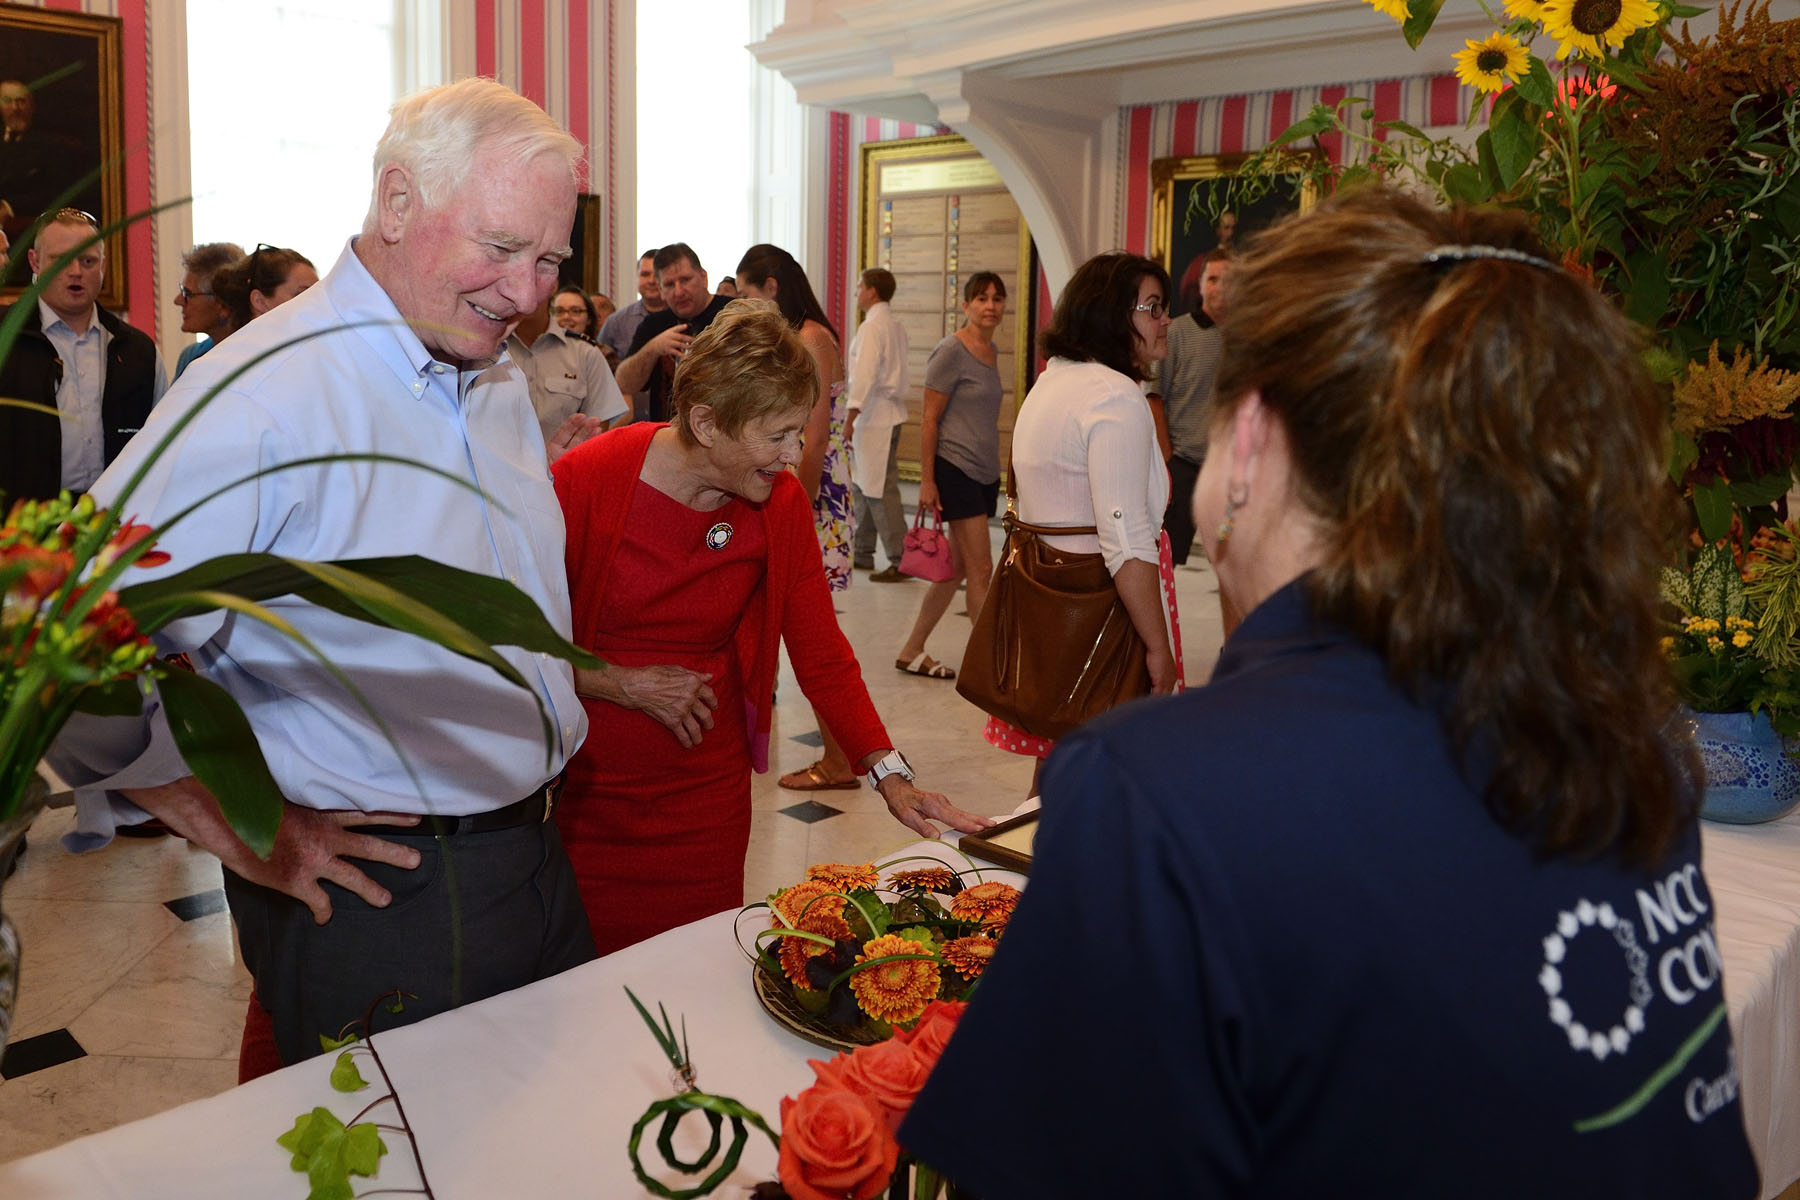 Their Excellencies the Right Honourable David Johnston, Governor General of Canada, and Mrs. Sharon Johnston hosted the 4th edition of Savour Fall at Rideau Hall on September 10, 2016.